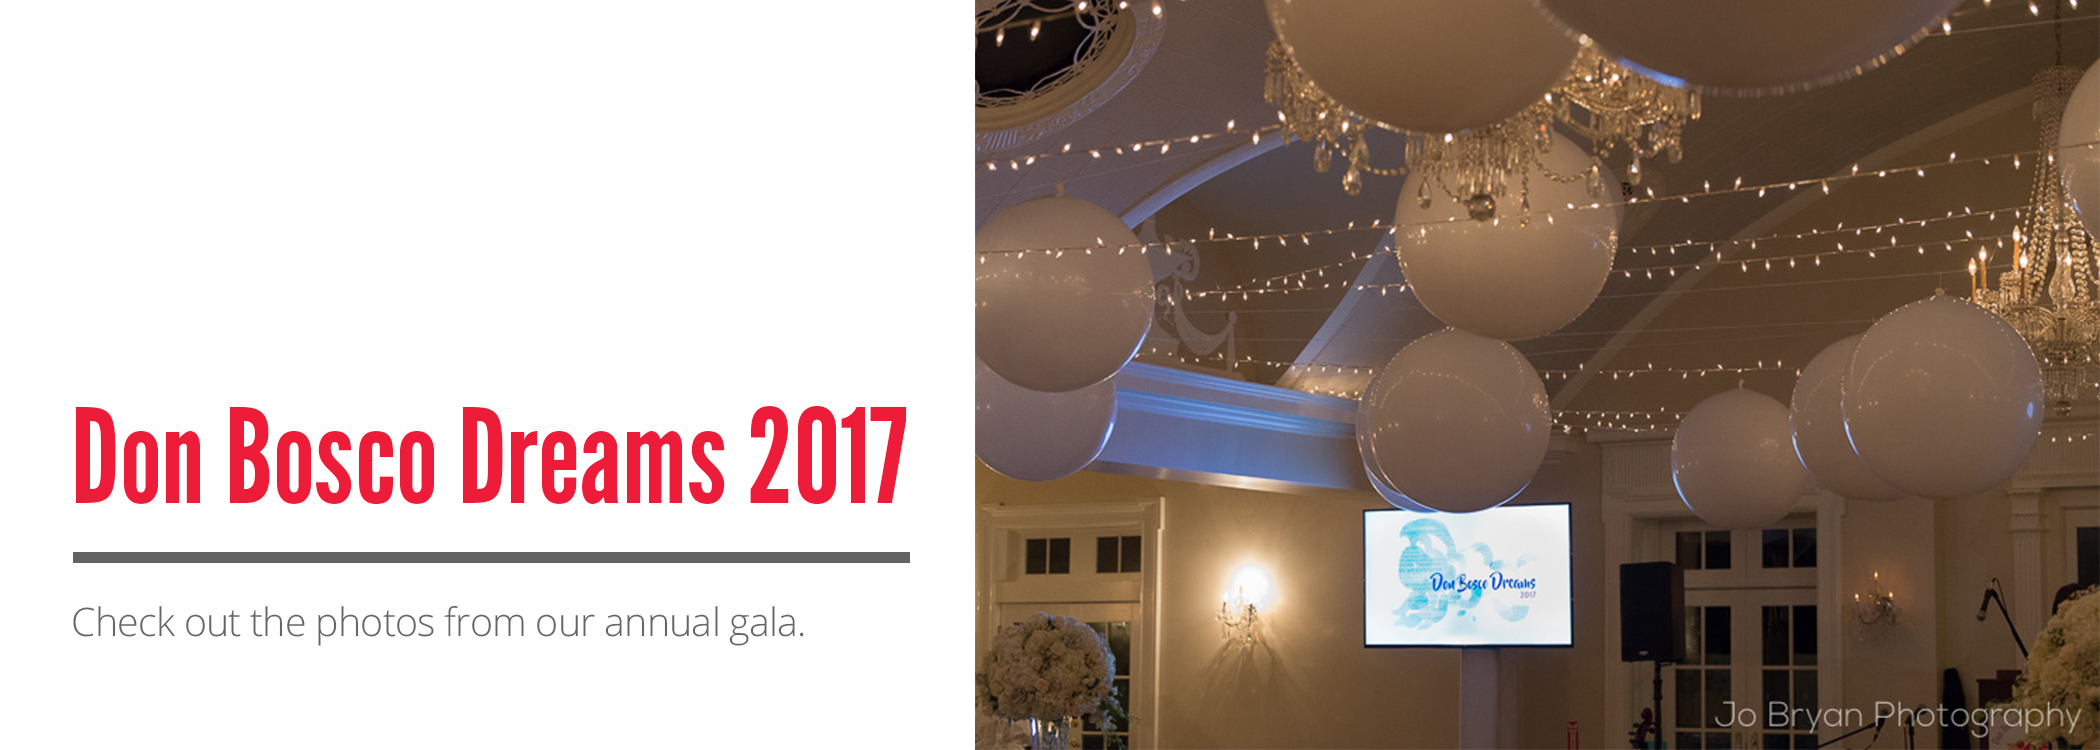 Don Bosco Dreams Gala Gallery